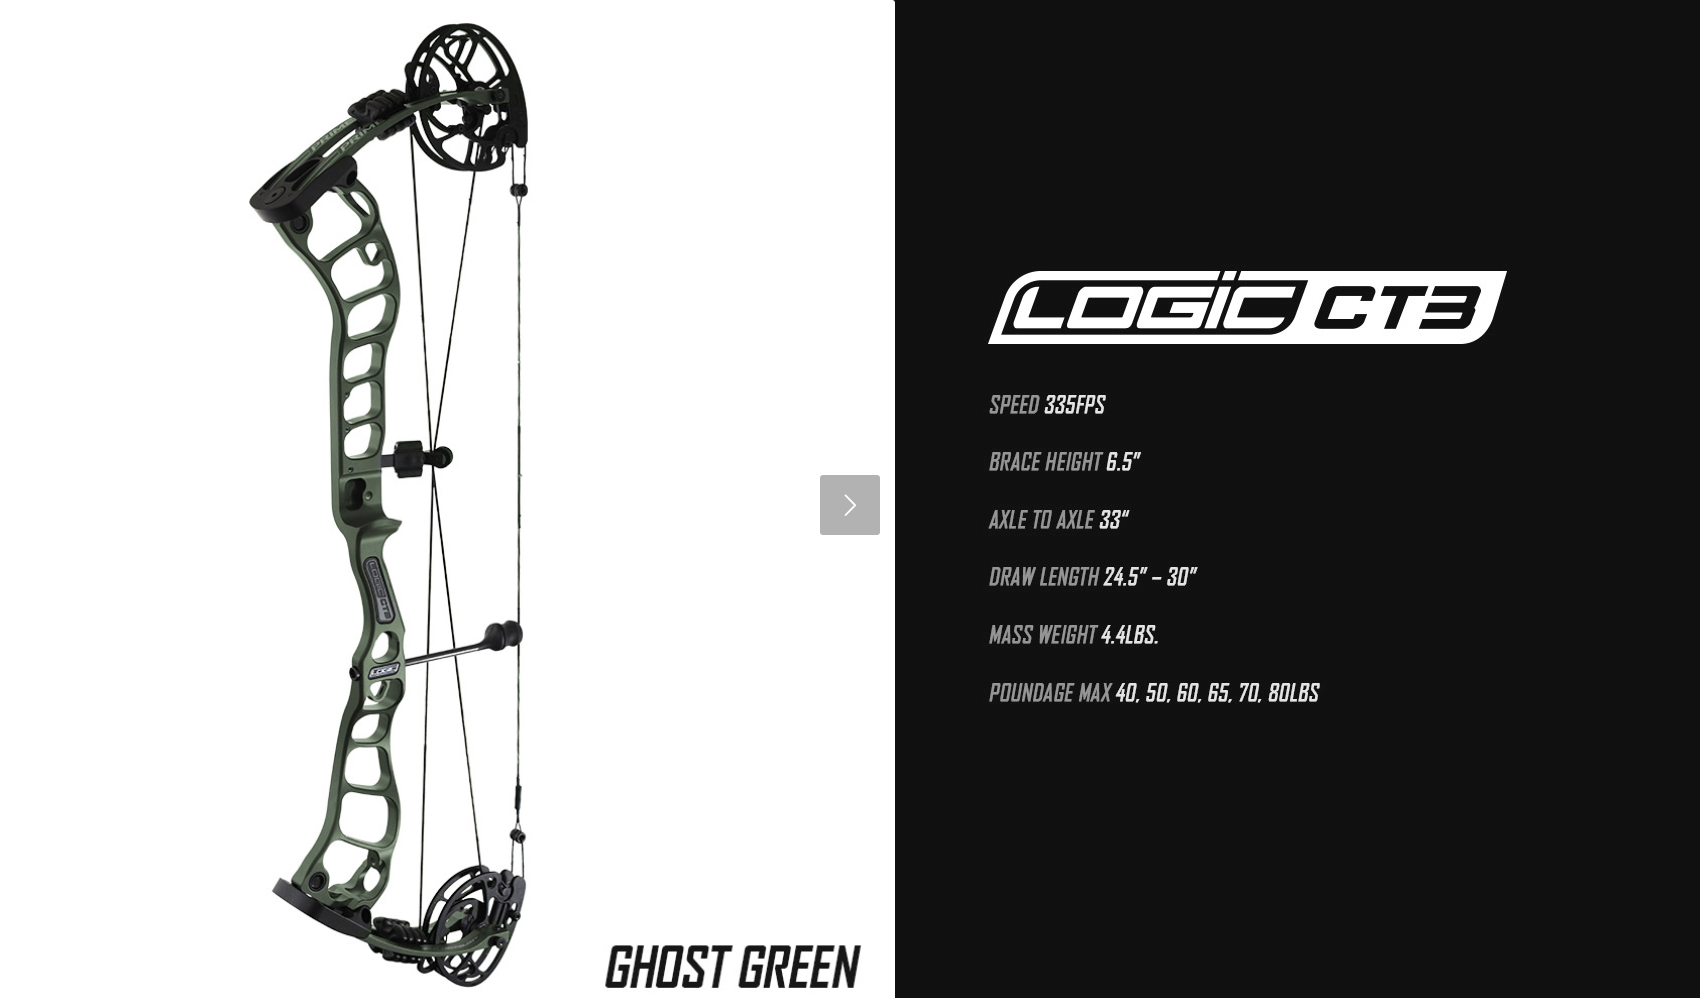 2019 G5 PrimeArchery Logic CT3 Specs